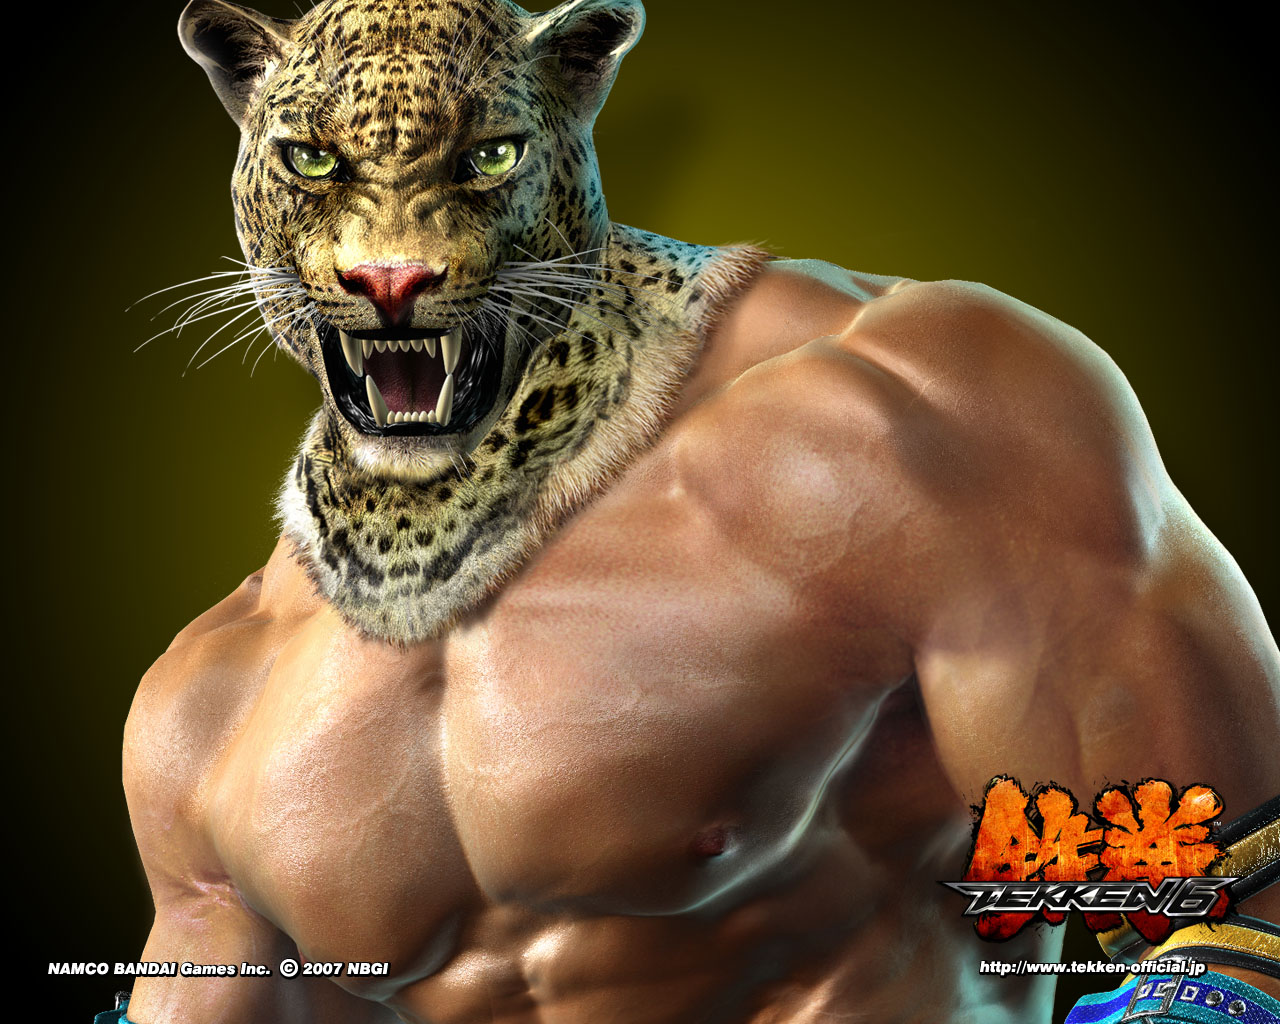 King Tekken 6 Wallpapers HD Wallpapers 1280x1024